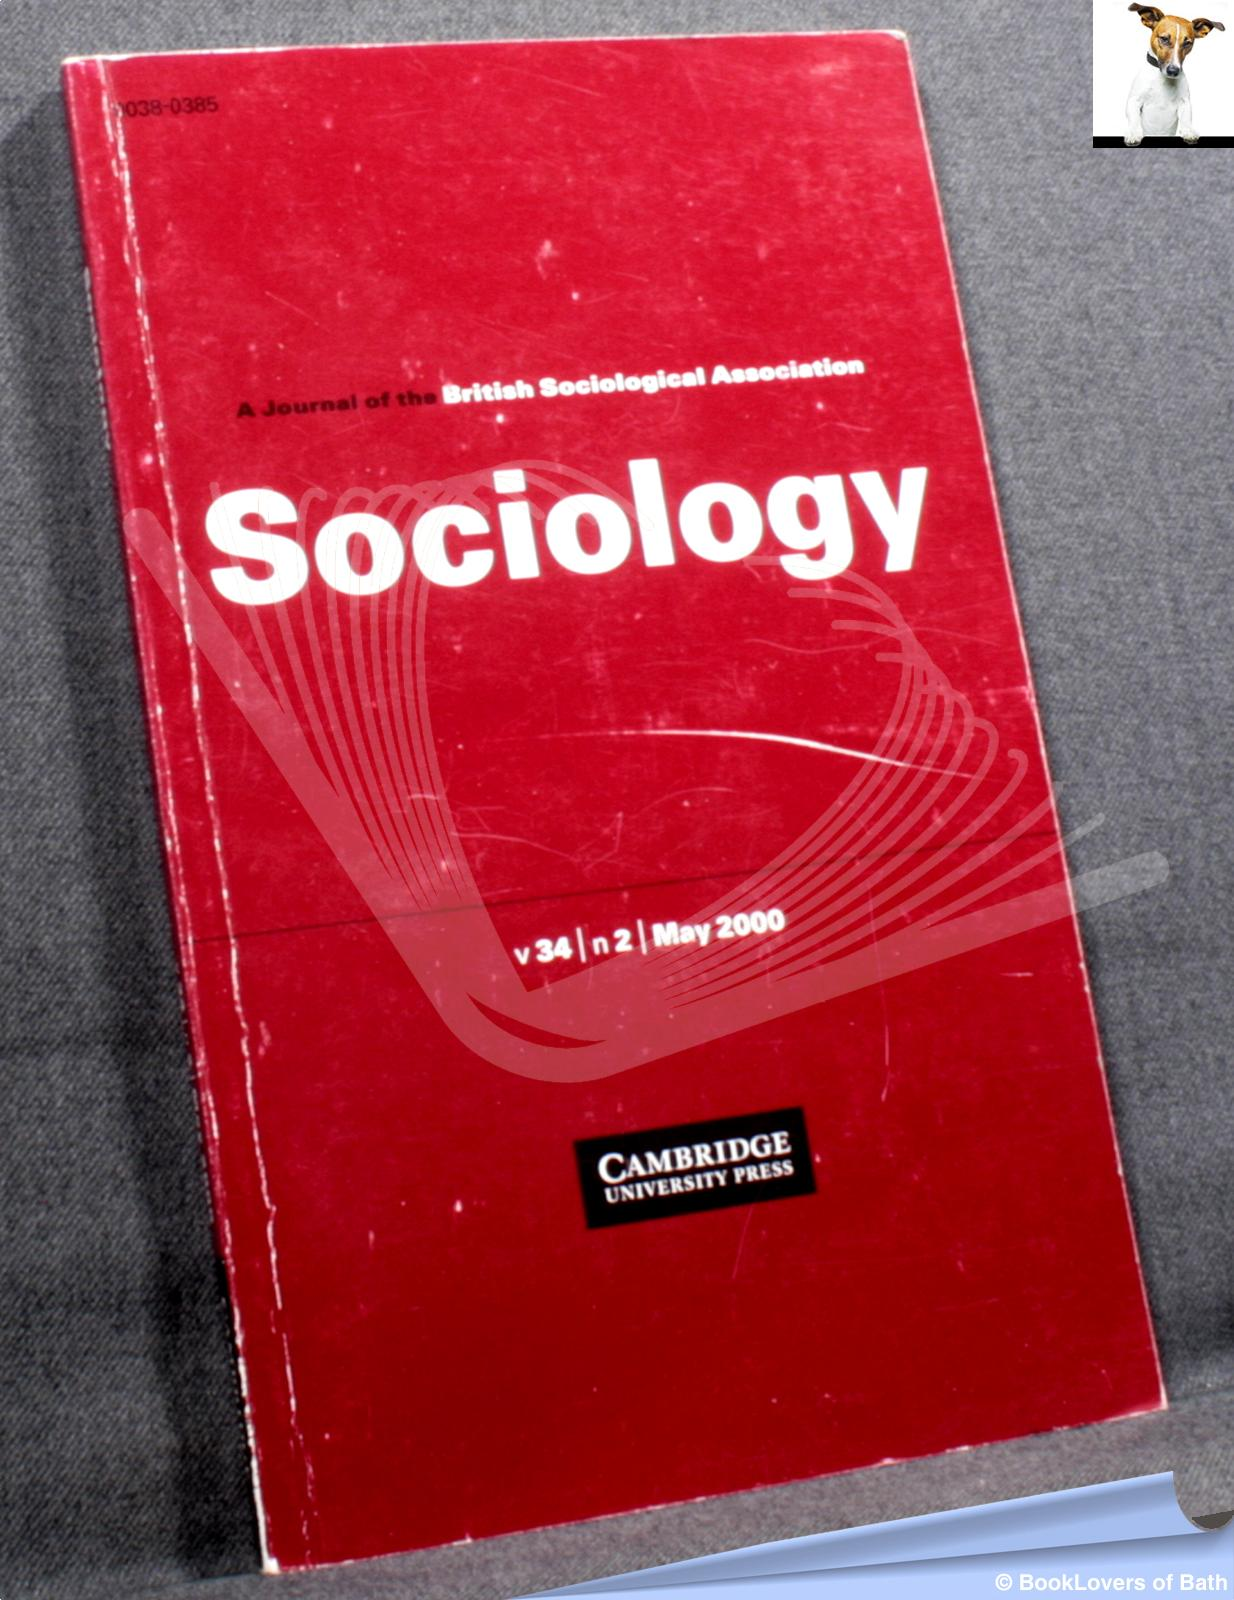 Sociology: The Journal of the British Sociological Association Volume 34, Number 2, May 2000 - Maggie O'Neill & Tony Spybey